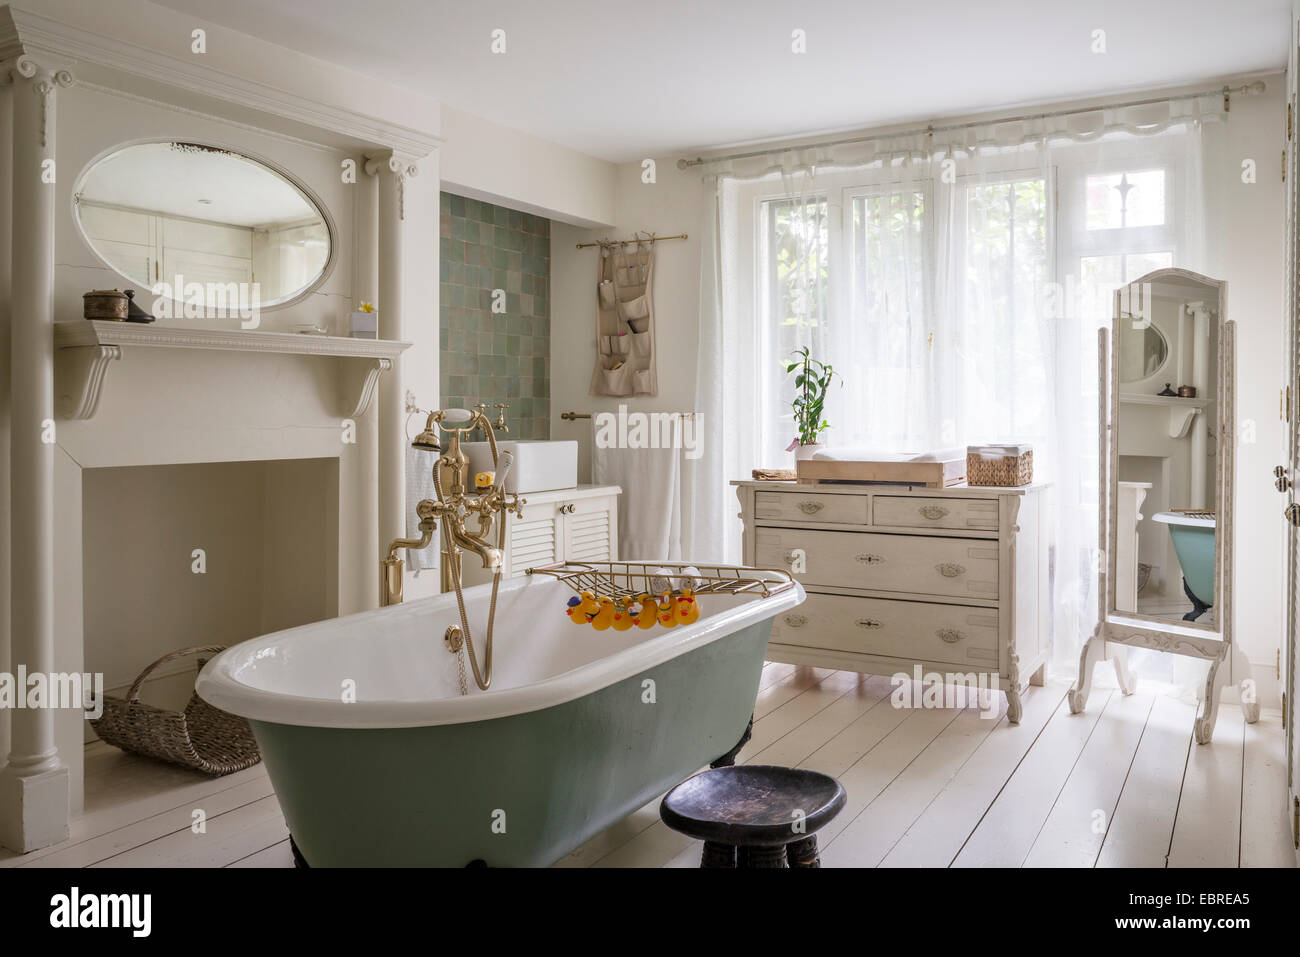 Freestanding roll-top bath with brass fittings in North London home - Stock Image